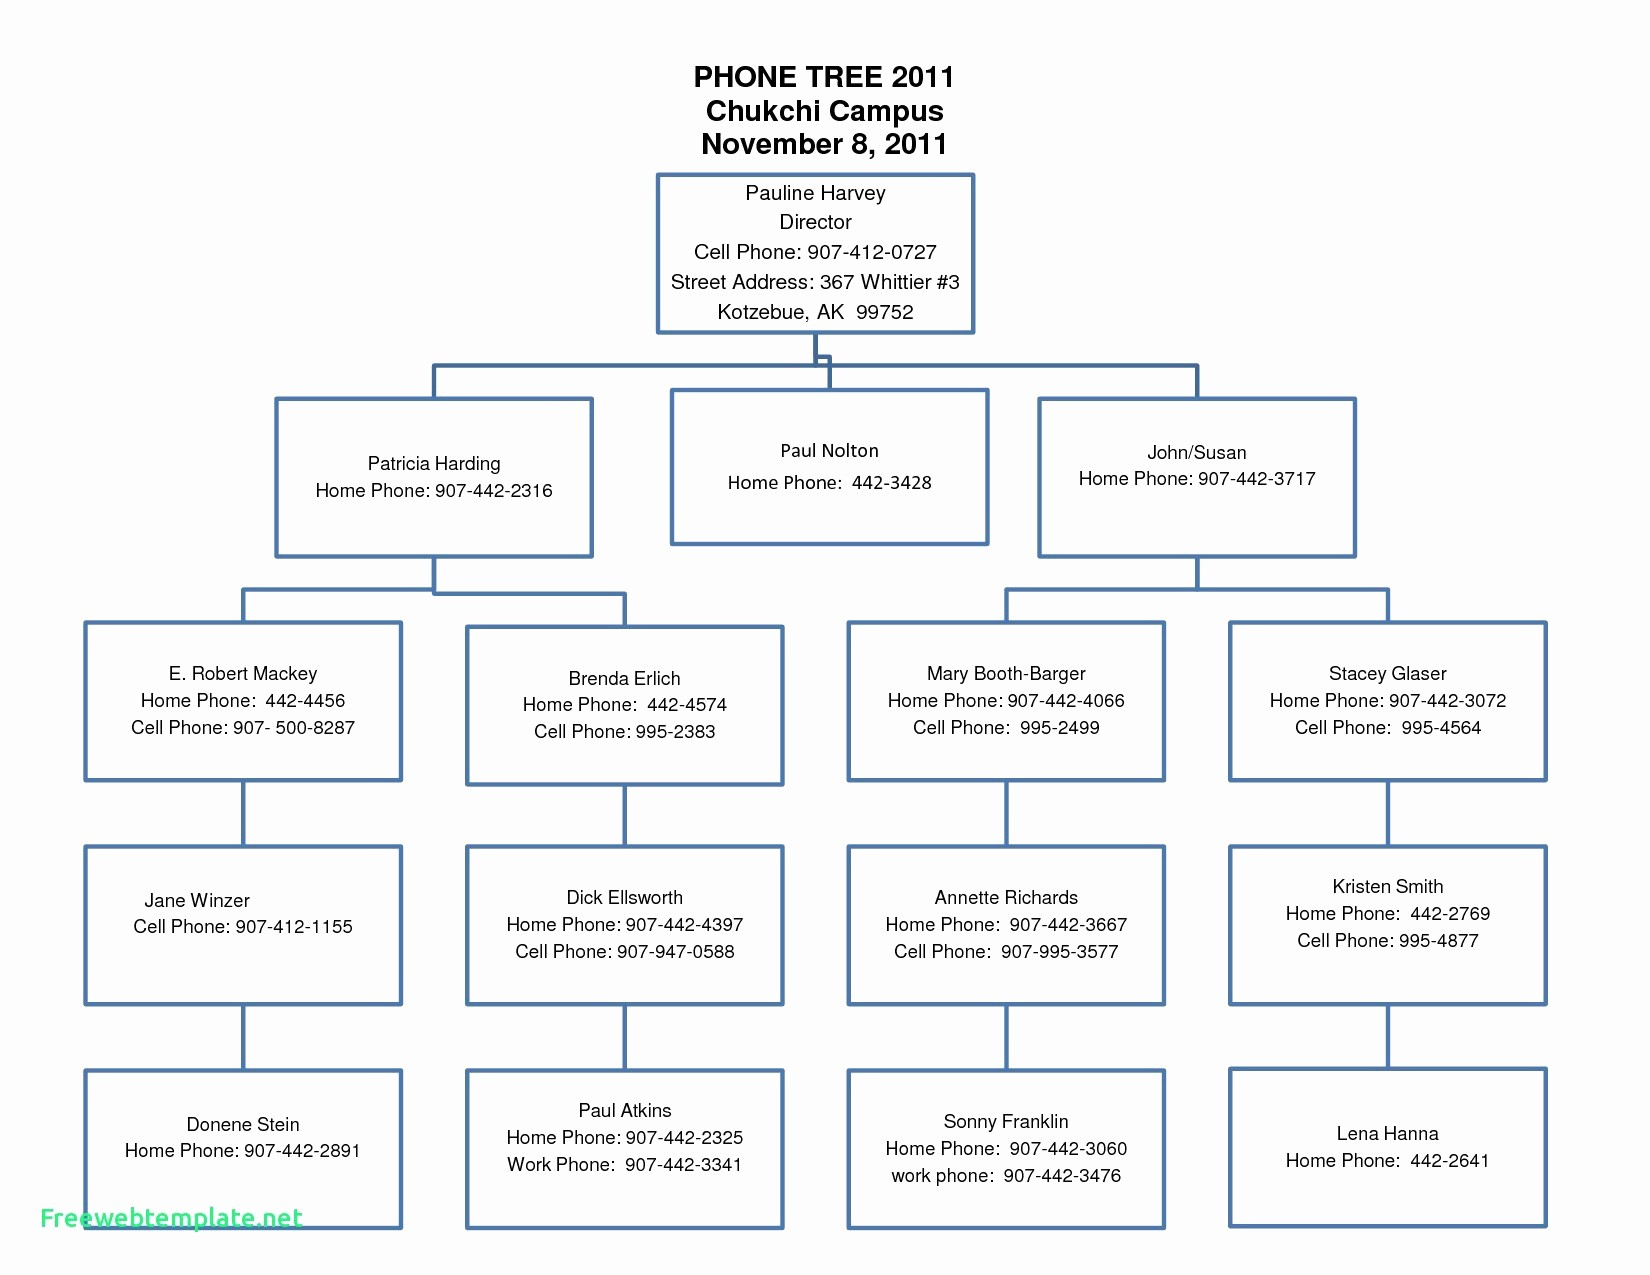 10 Generation Family Tree Excel Inspirational Free Family Tree Template Excel Unique 10 Generation